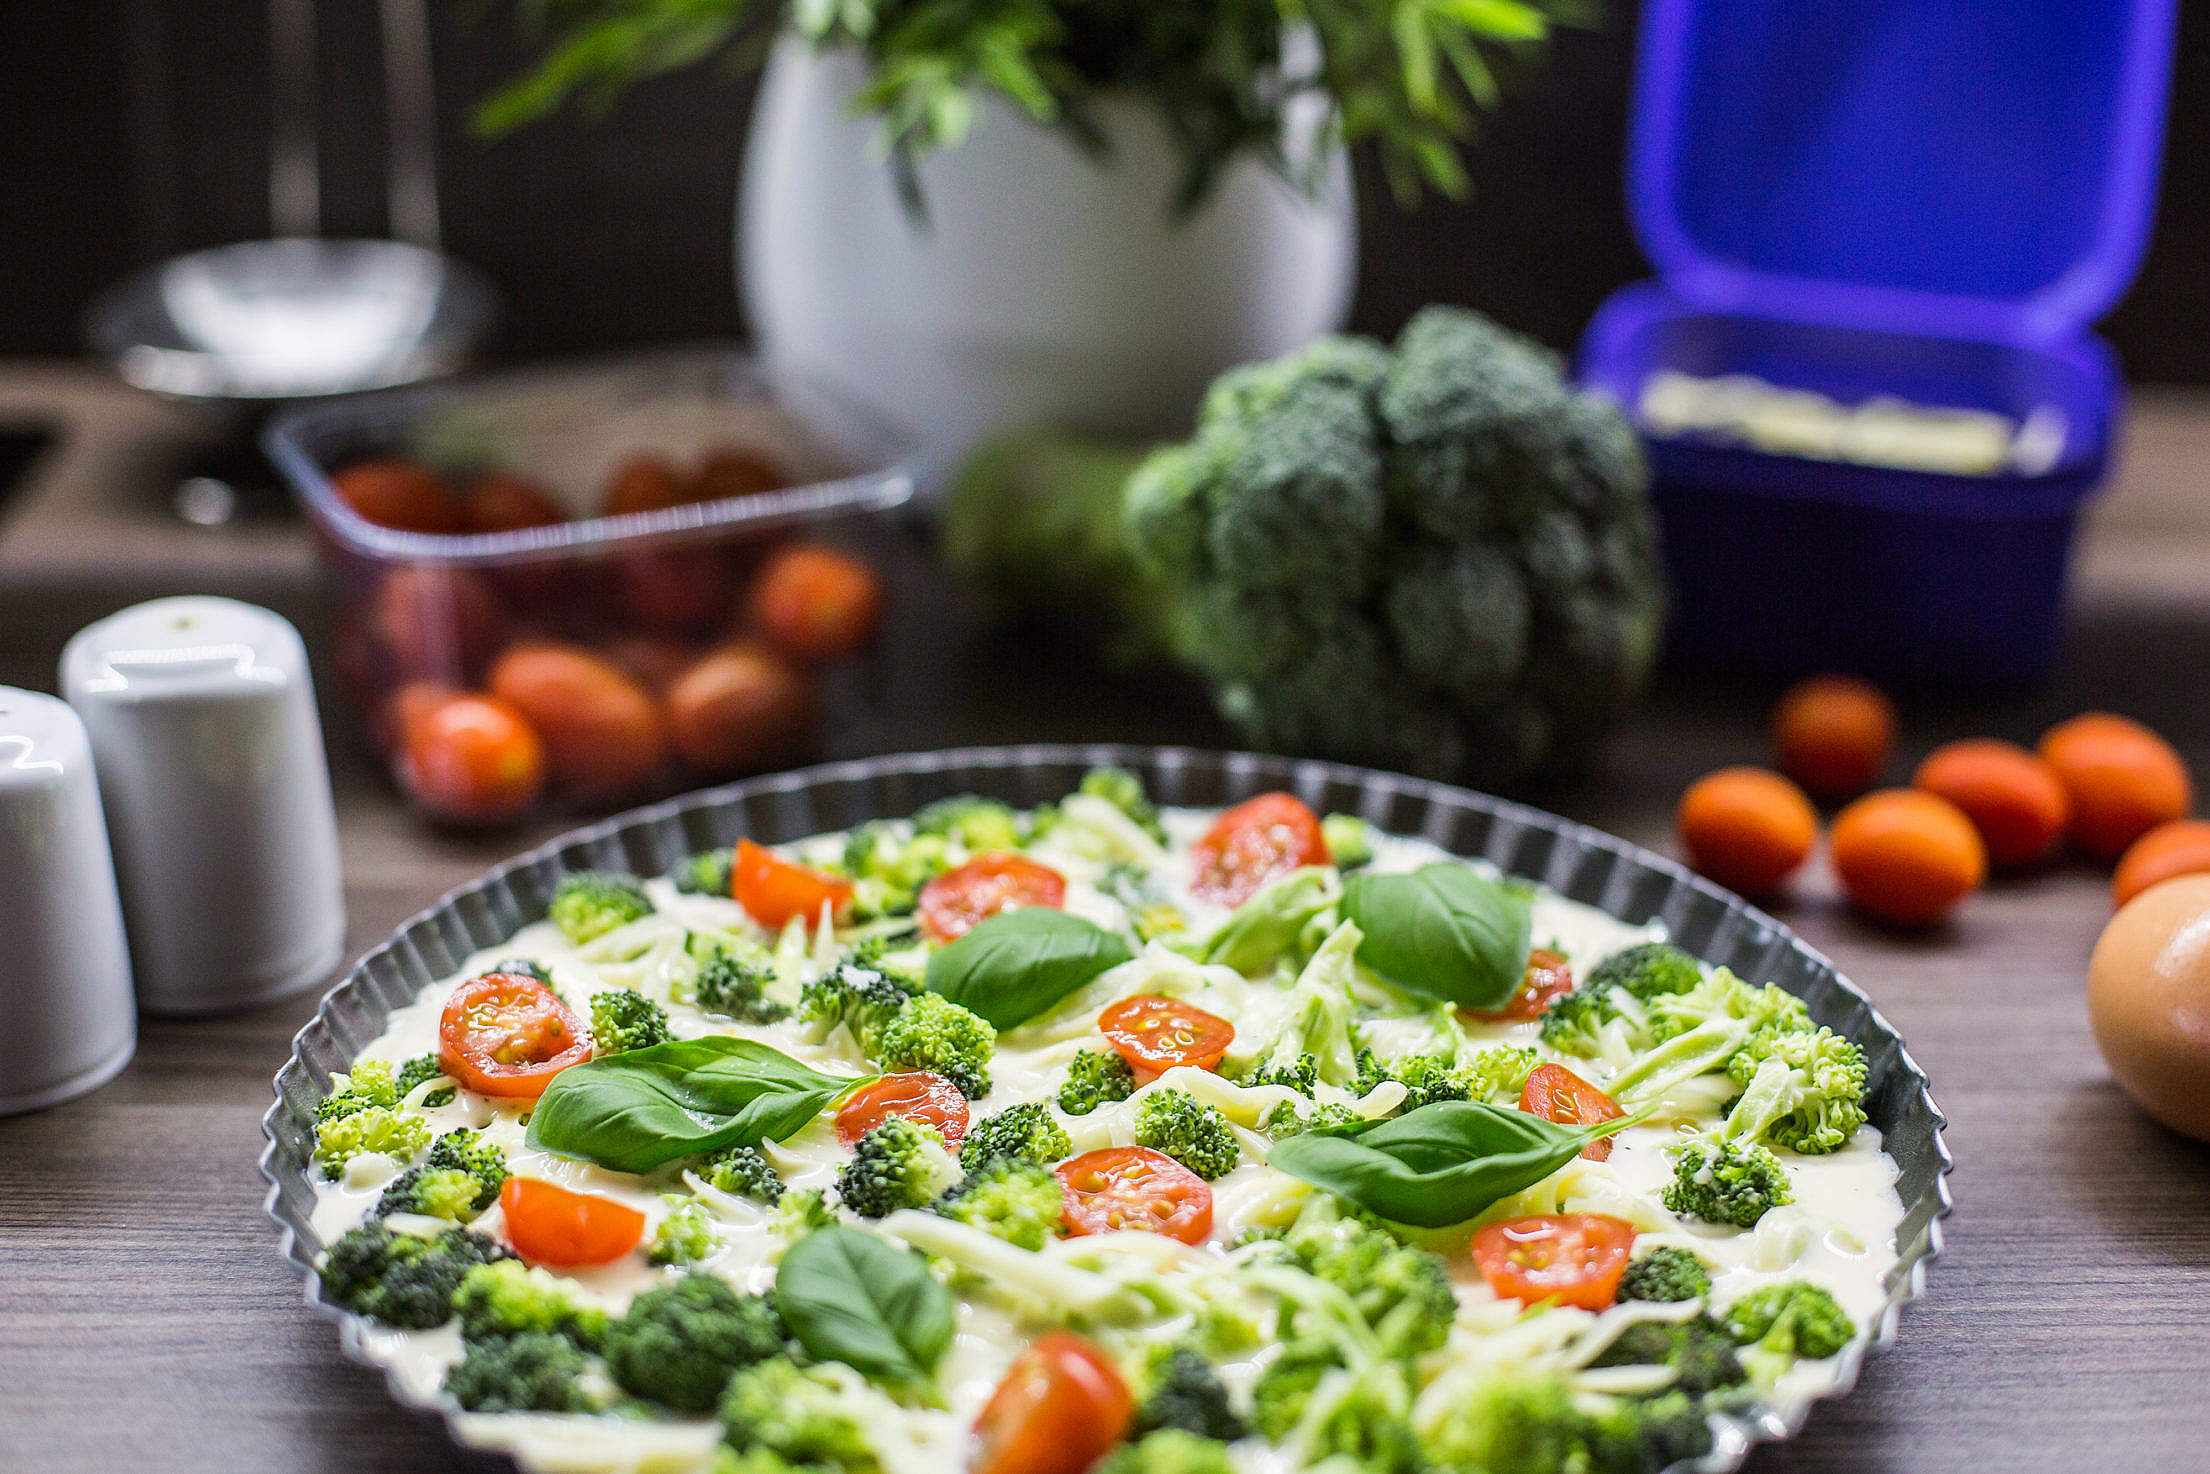 Fresh & Healthy Fitness Broccoli Pie with Basil Free Stock Photo